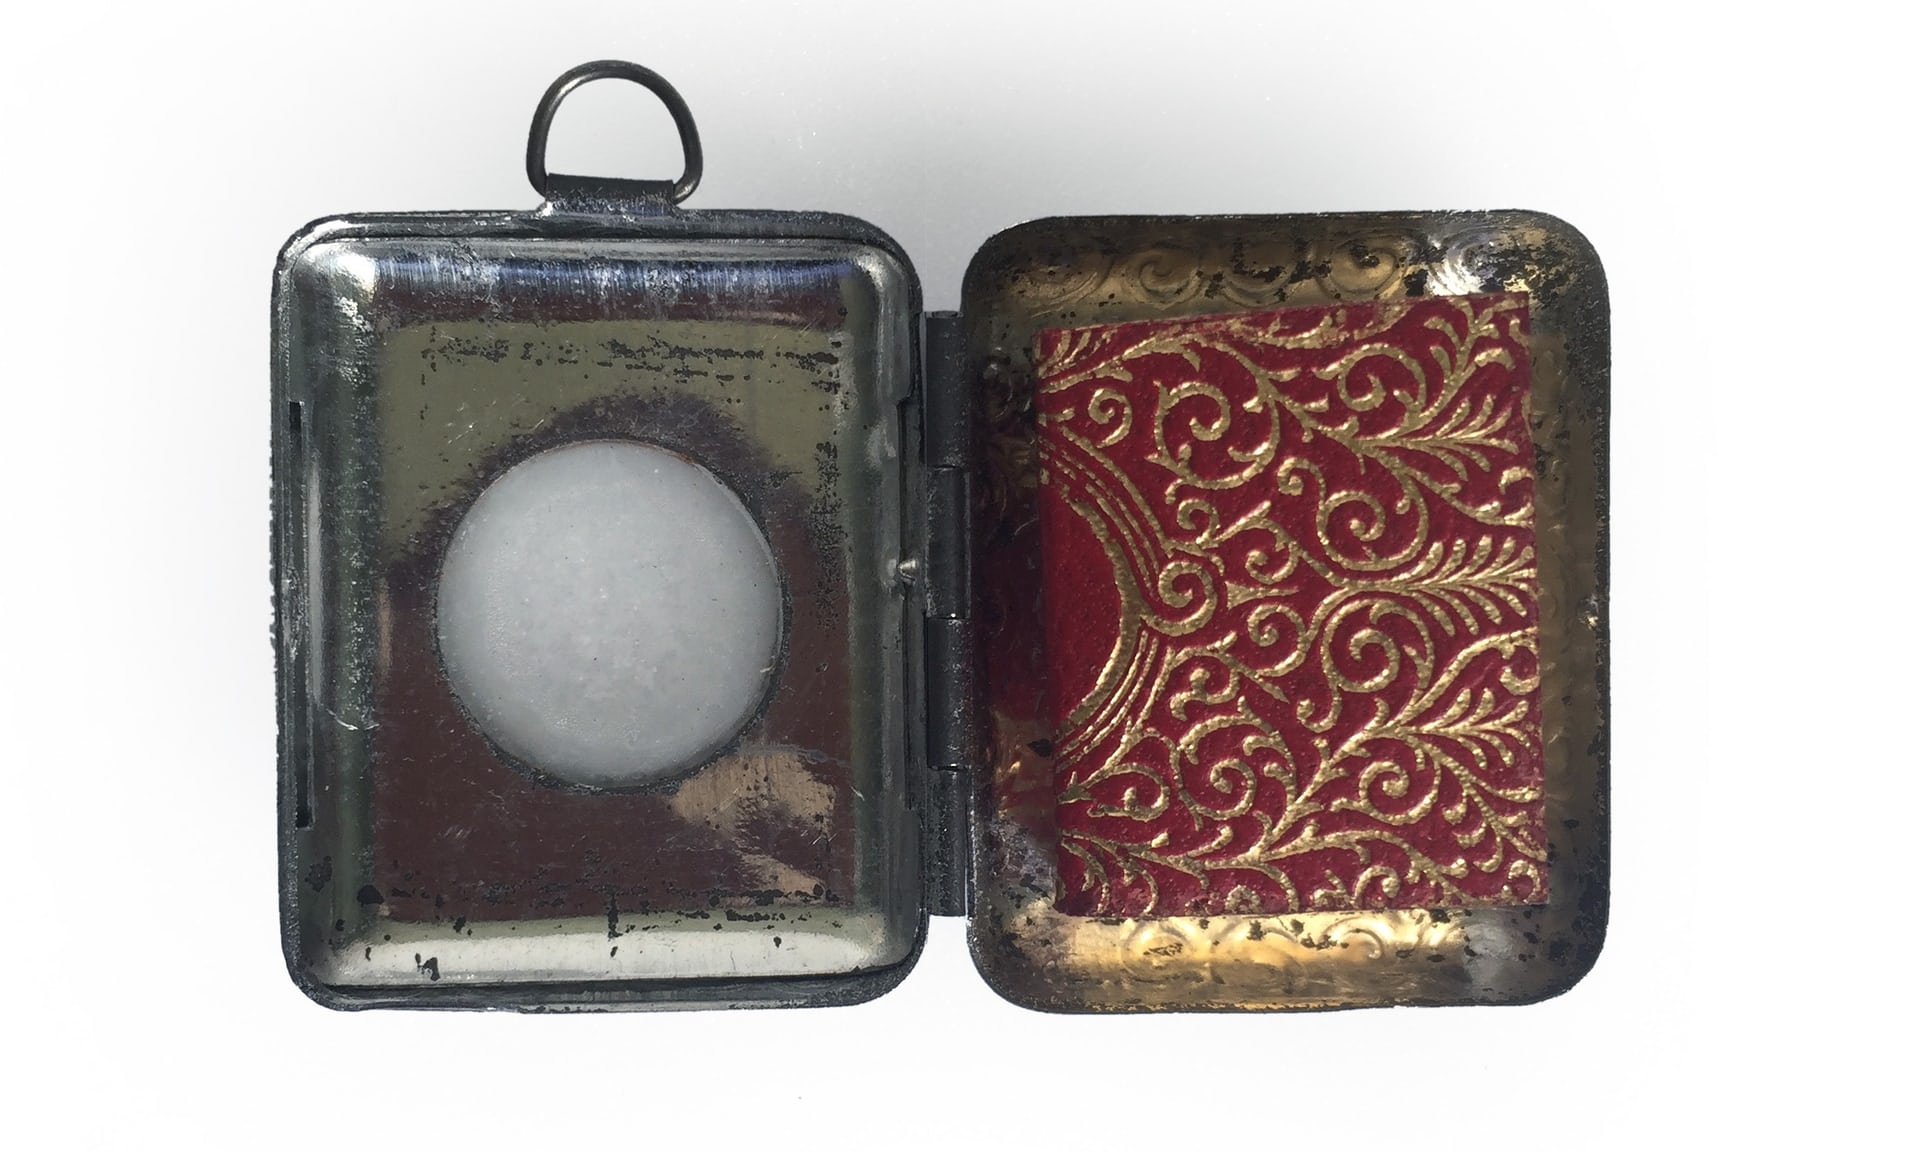 Emery Walker's Islamic collection in London: A miniature Qur'an, the size of a postage stamp